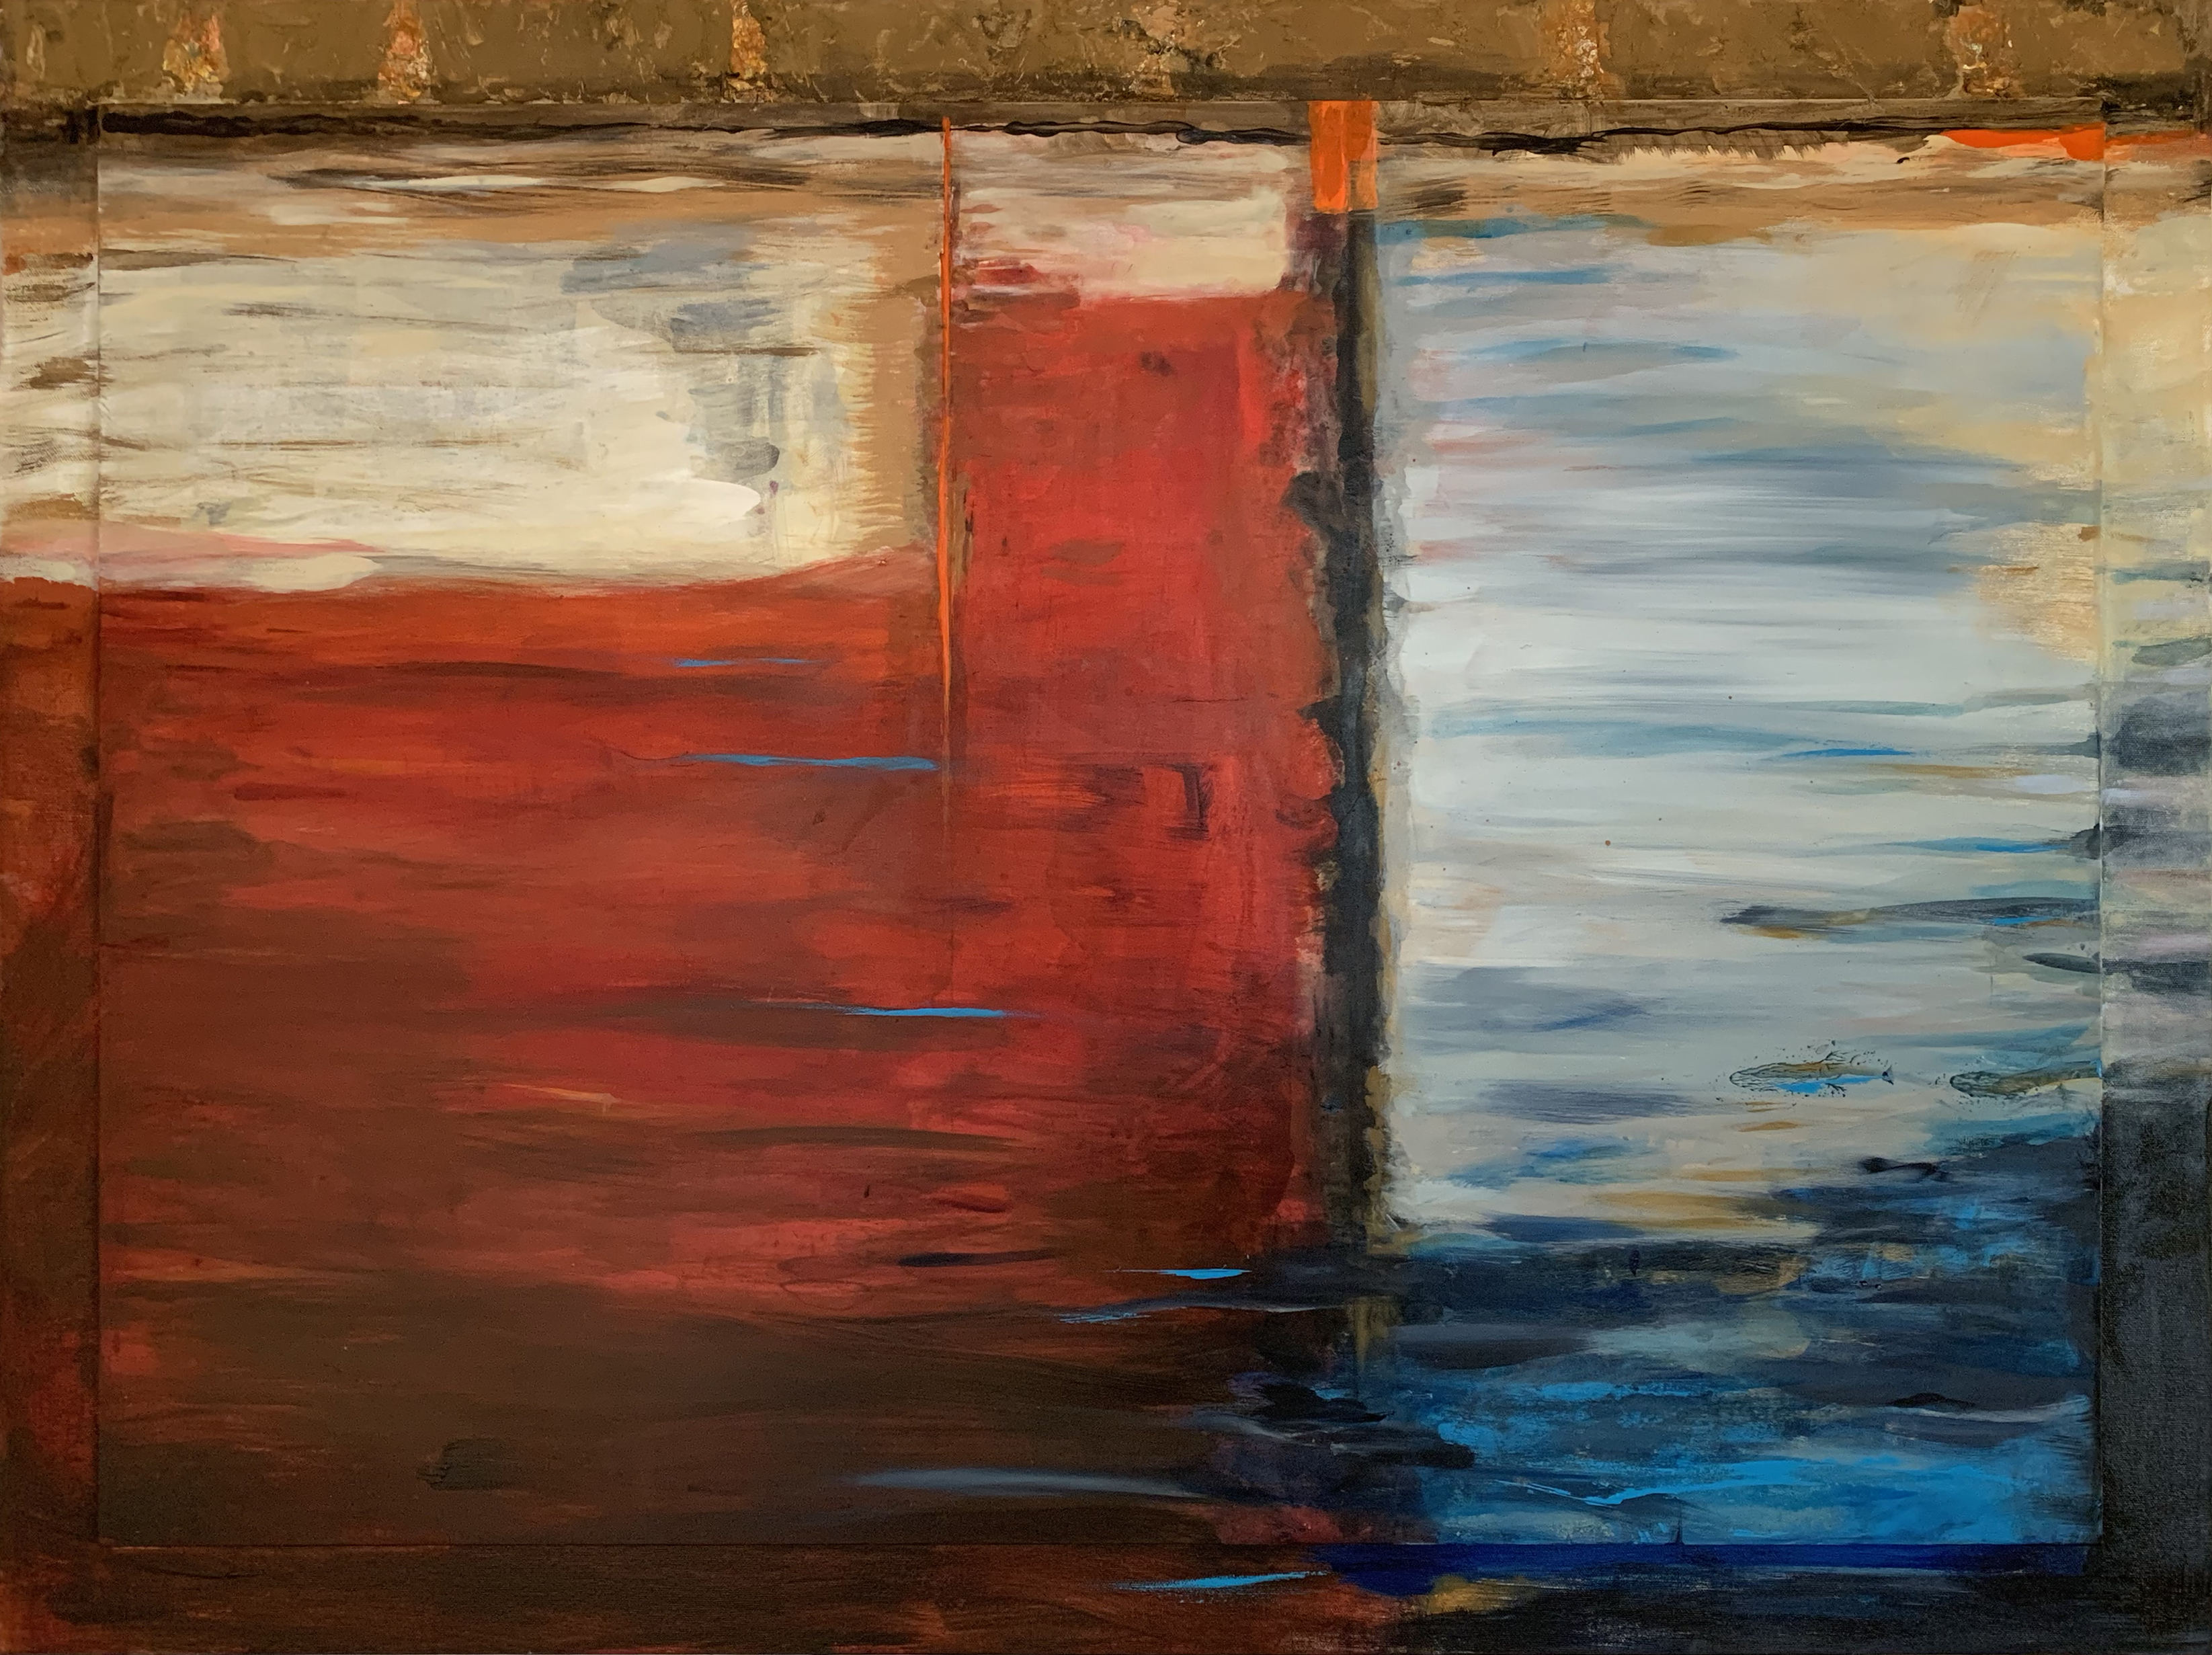 Red white and blue abstract art, Michael Colpitts paintings, Large Painting Mixed Media on Canvas Wall Art Abstract Simplistic, Mixed Media on Canvas, colorful abstract paintings, large abstract paintings for sale, bold paintings, modern paintings on canvas